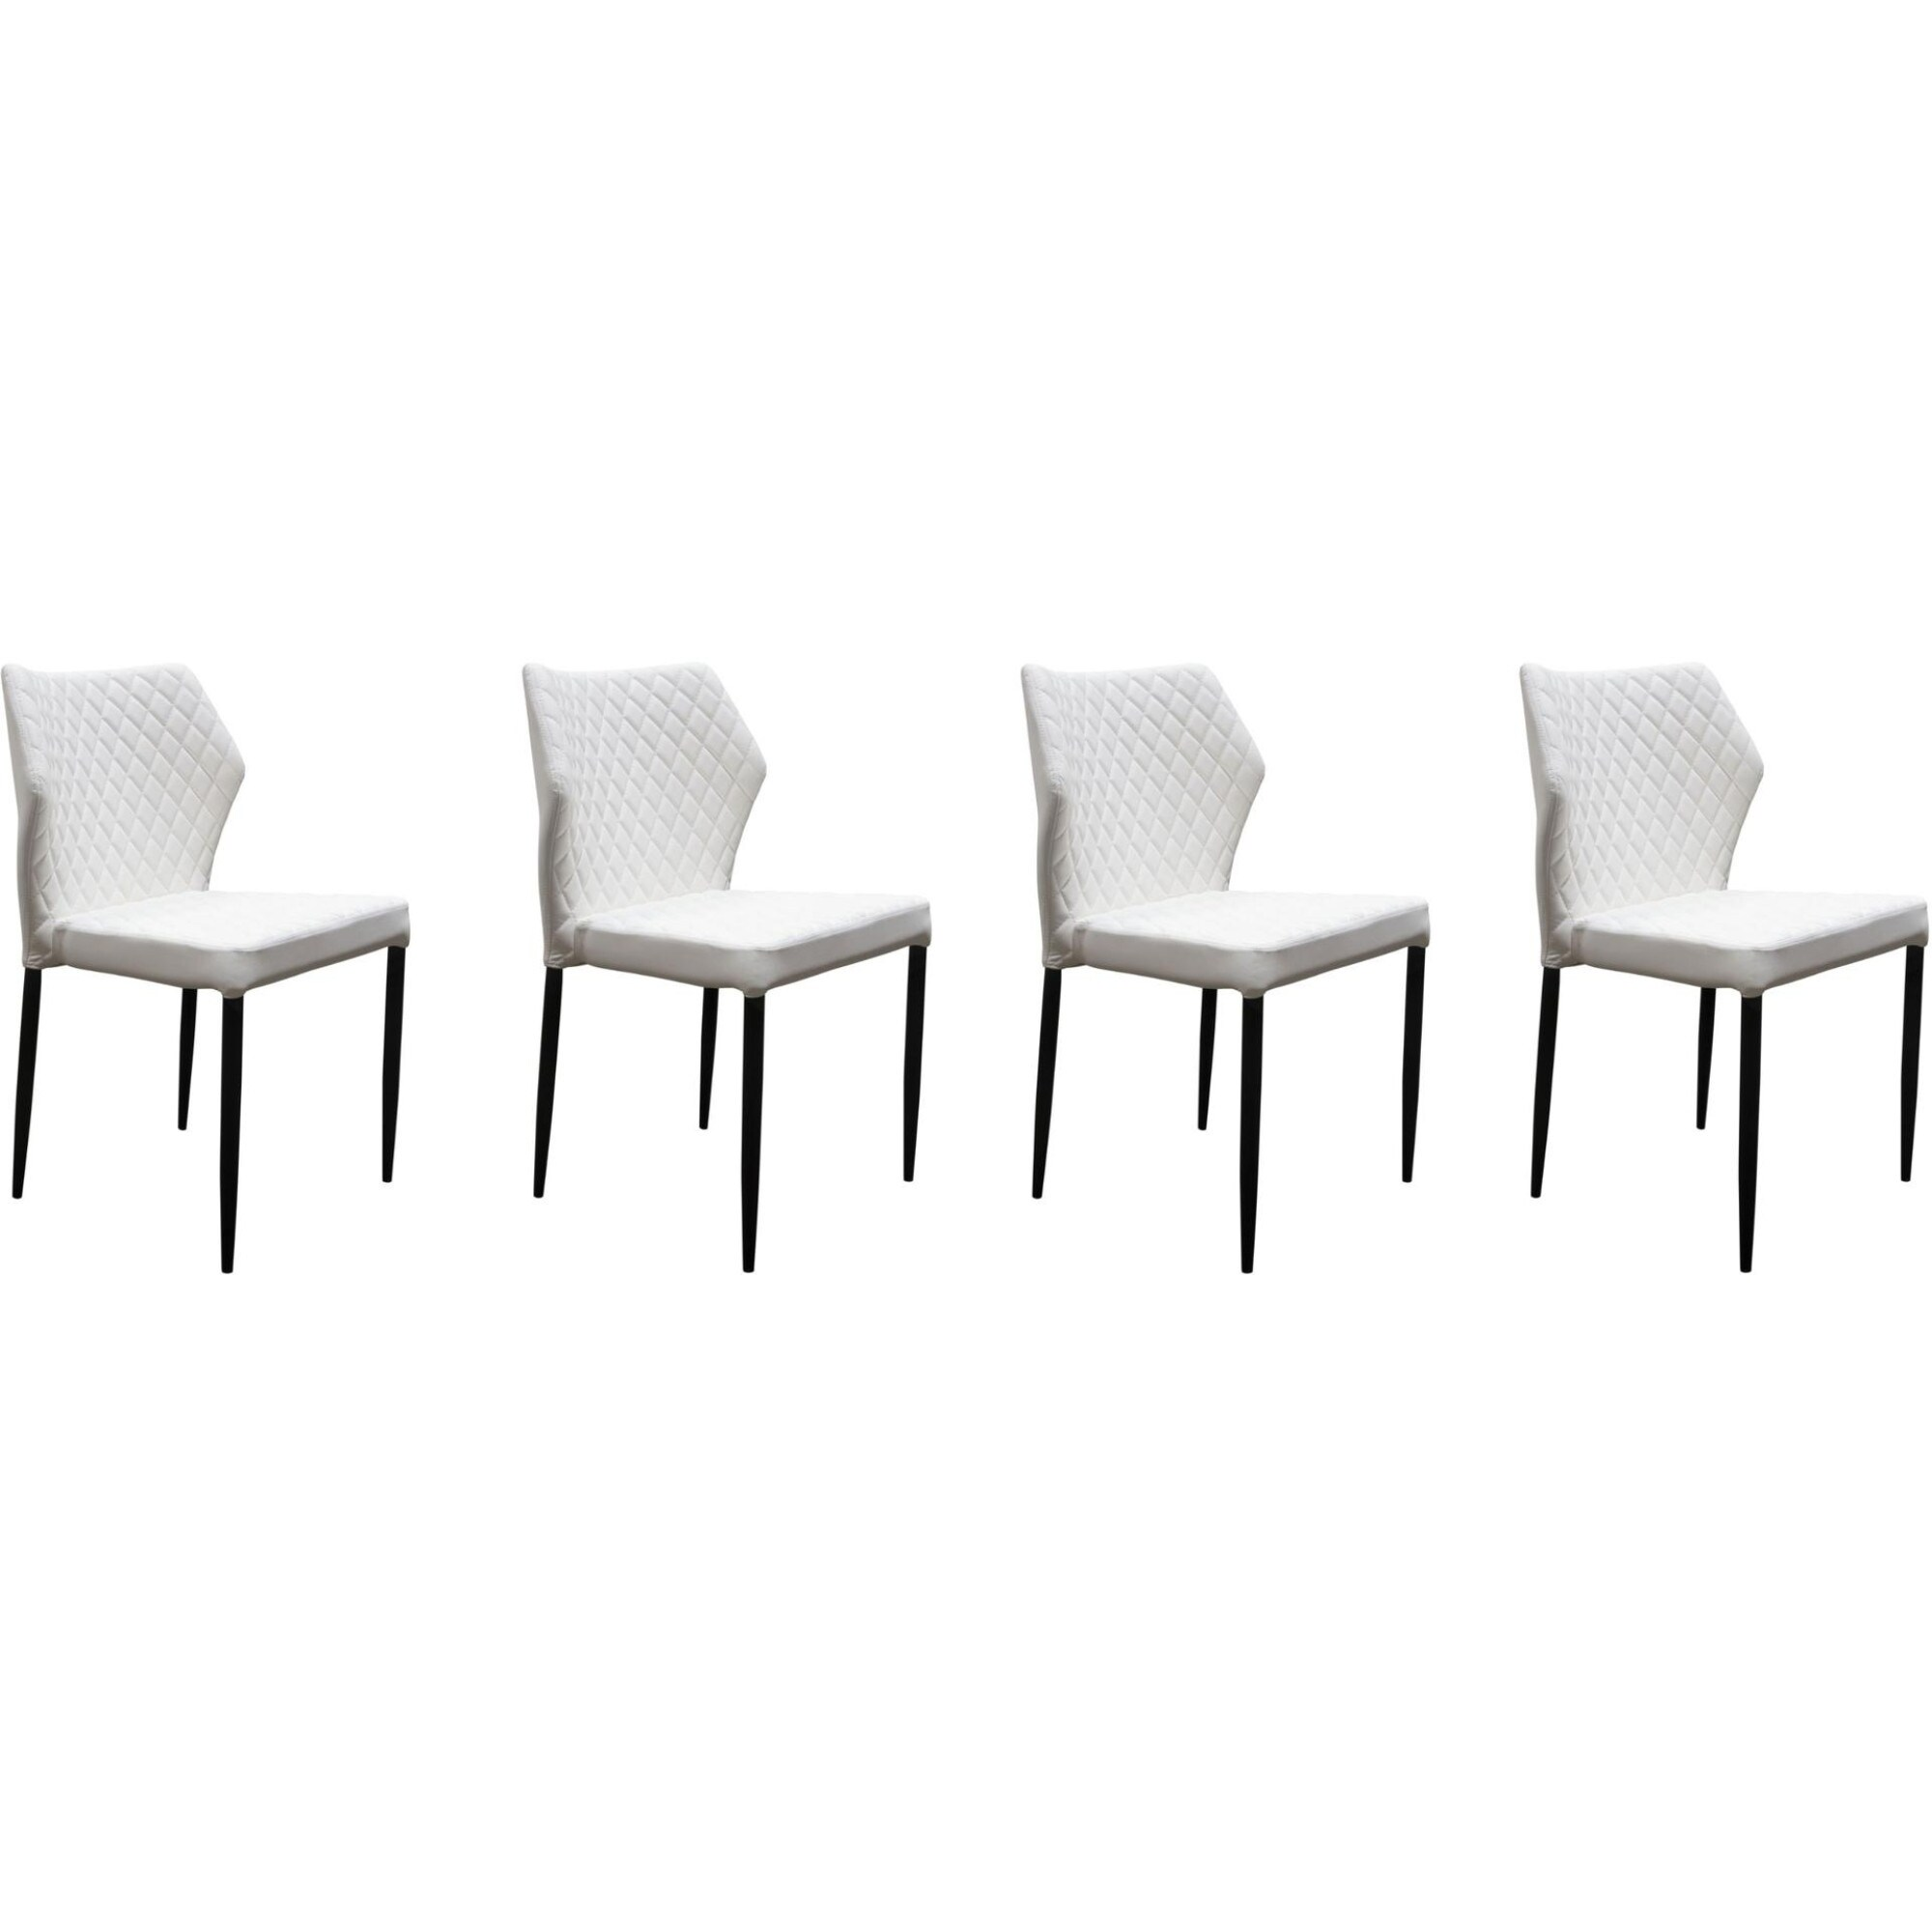 Enjoyable Diamond Tufted Leatherette Dining Chair With Metal Legs White Set Of Four Unemploymentrelief Wooden Chair Designs For Living Room Unemploymentrelieforg